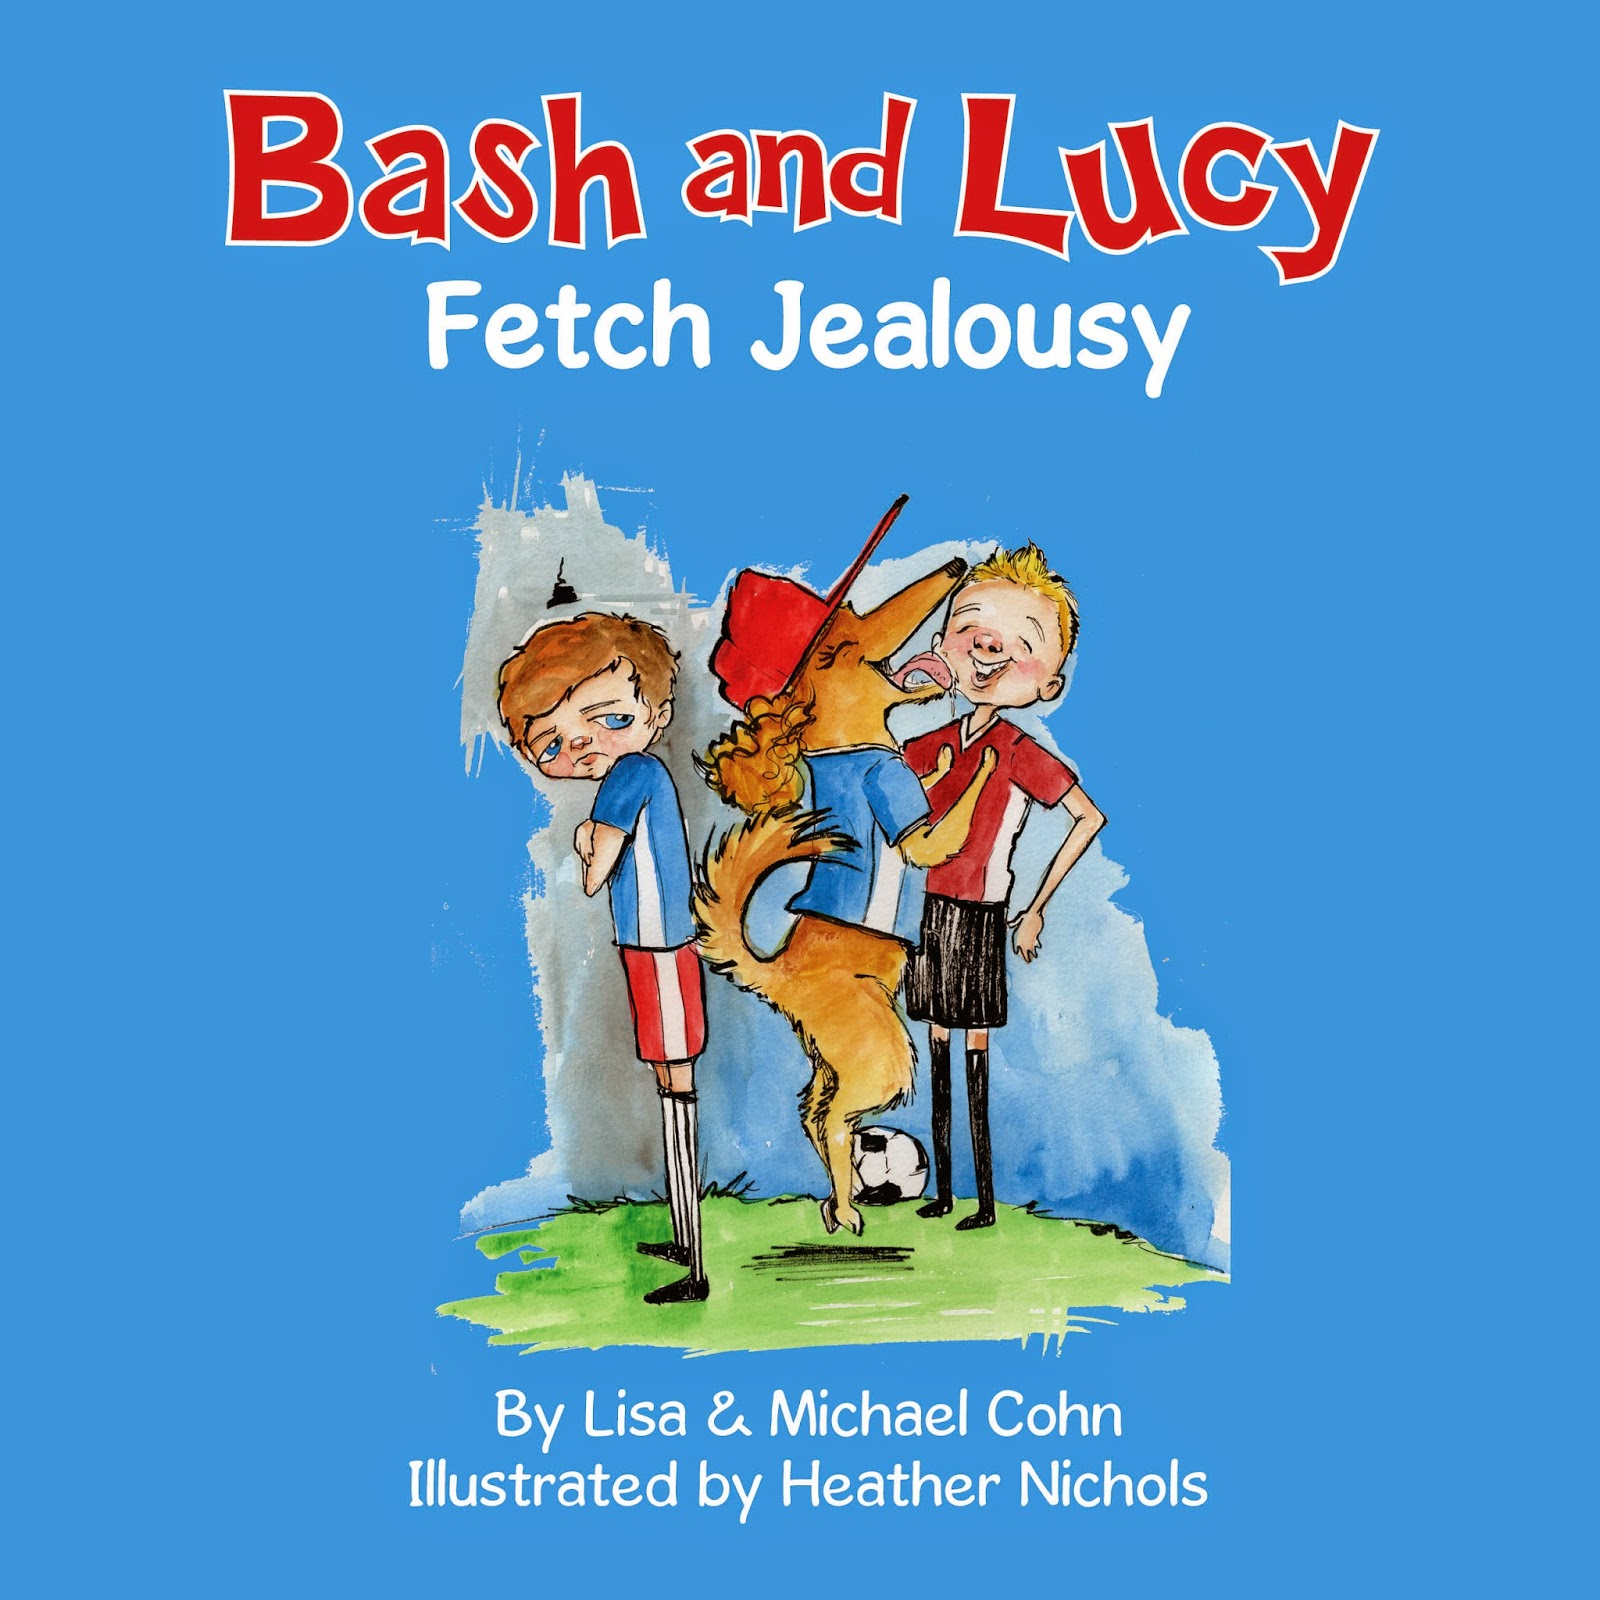 Bash and Lucy Kid Picture Book